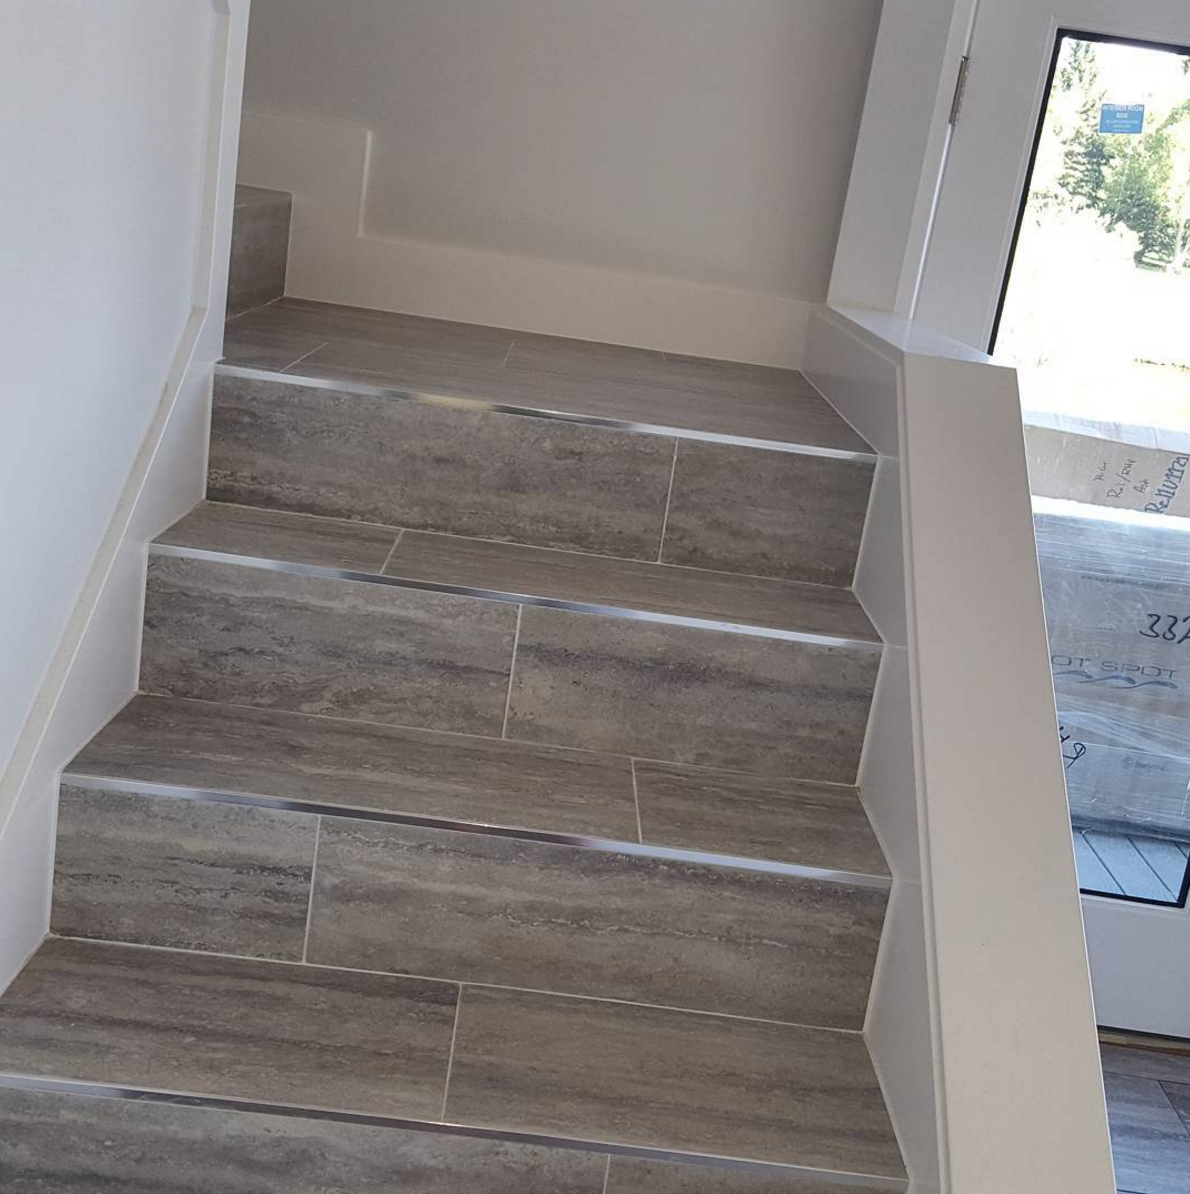 Top 60 Best Stair Trim Ideas: Look At Those Schluter Edged , Stone Tile Stairs... The